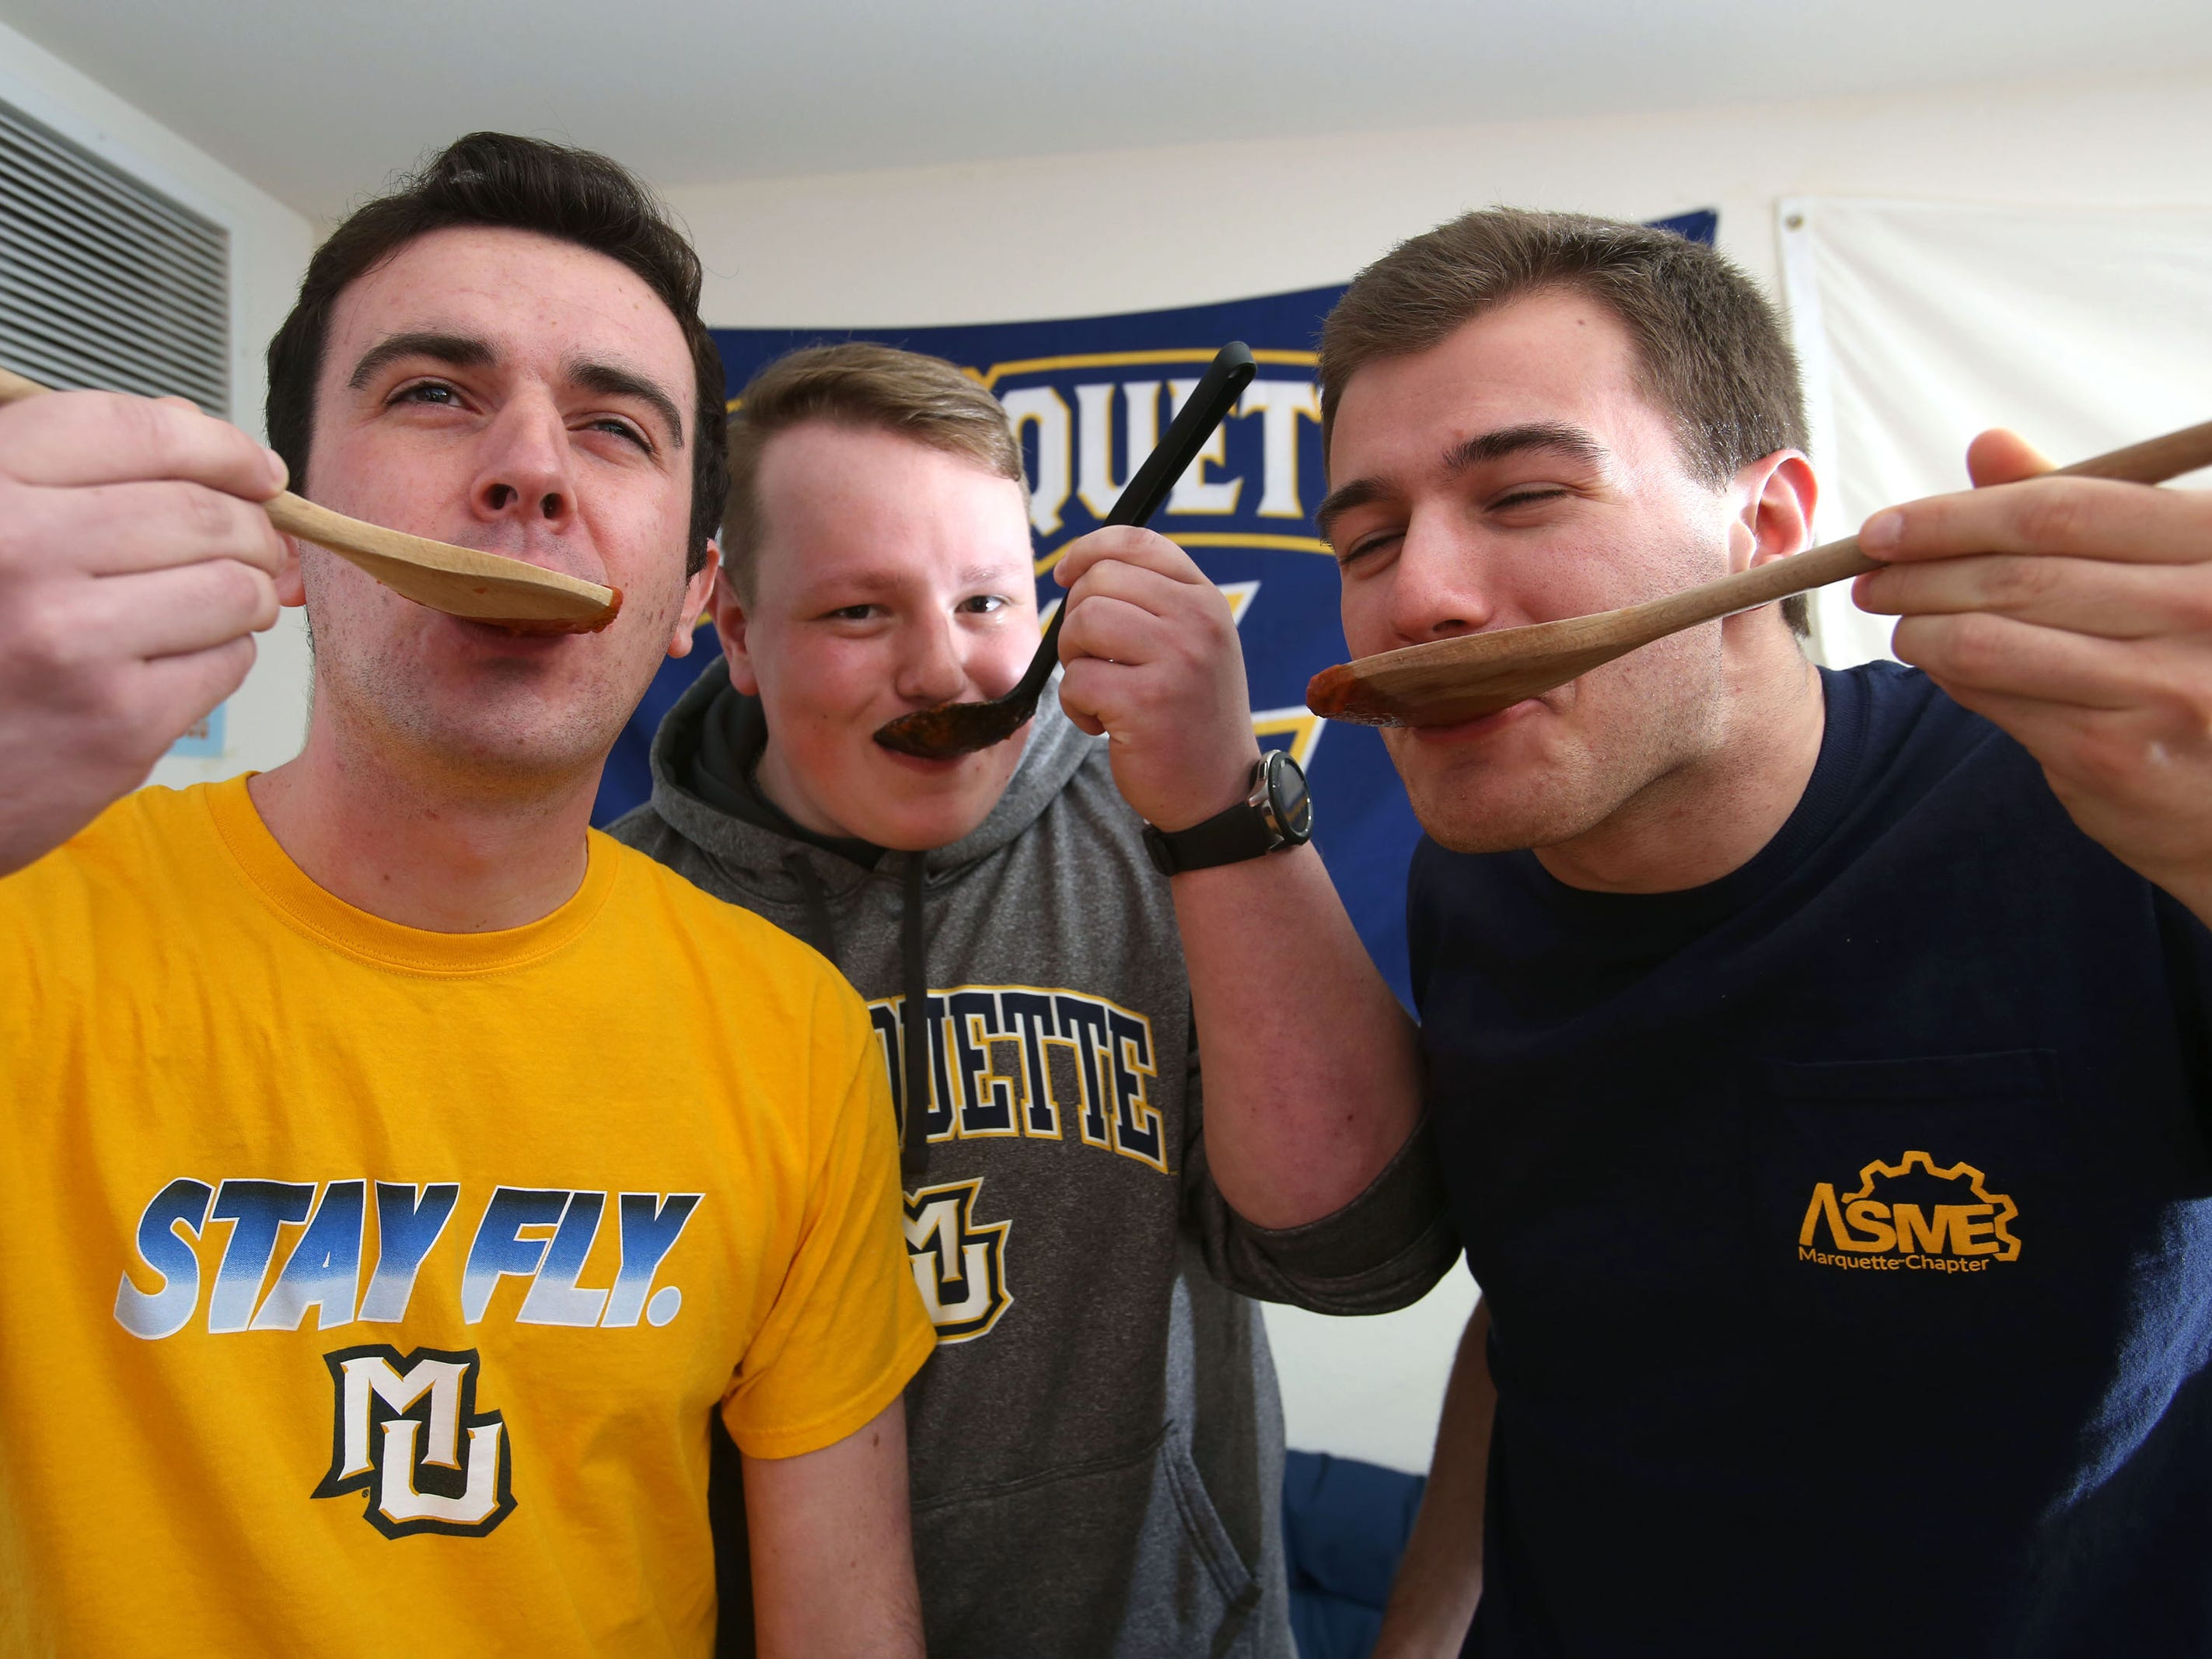 The three Marquette University mechanical engineering majors who started 526 Pasta are James McKenna, from left, Chris Malliet and Phil Parisi. A fourth engineering senior, Rachel Witt, joined their pasta team.